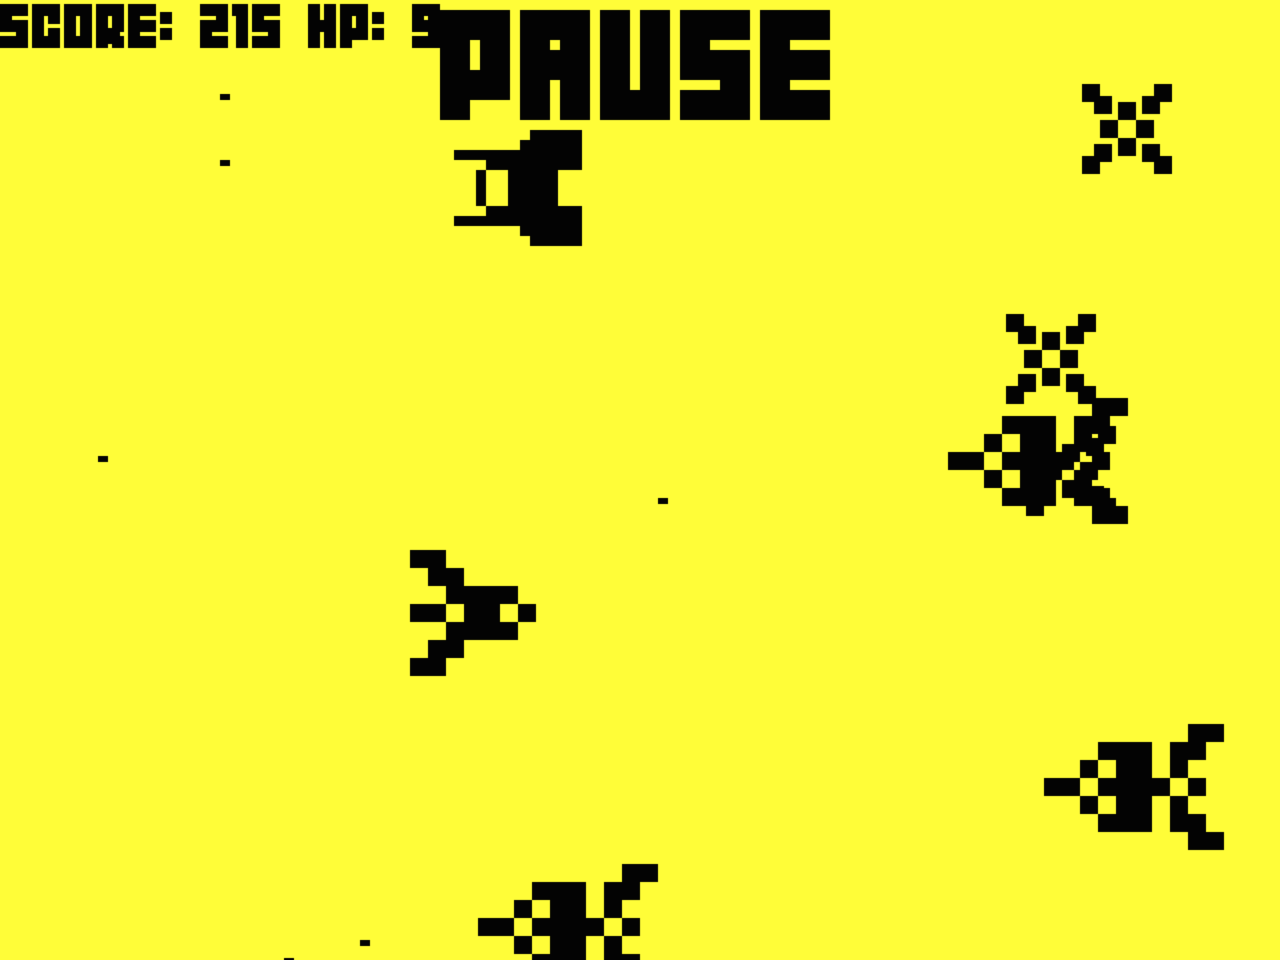 A screenshot of a game in progress. The player's ship is in a swarm of enemy ships.